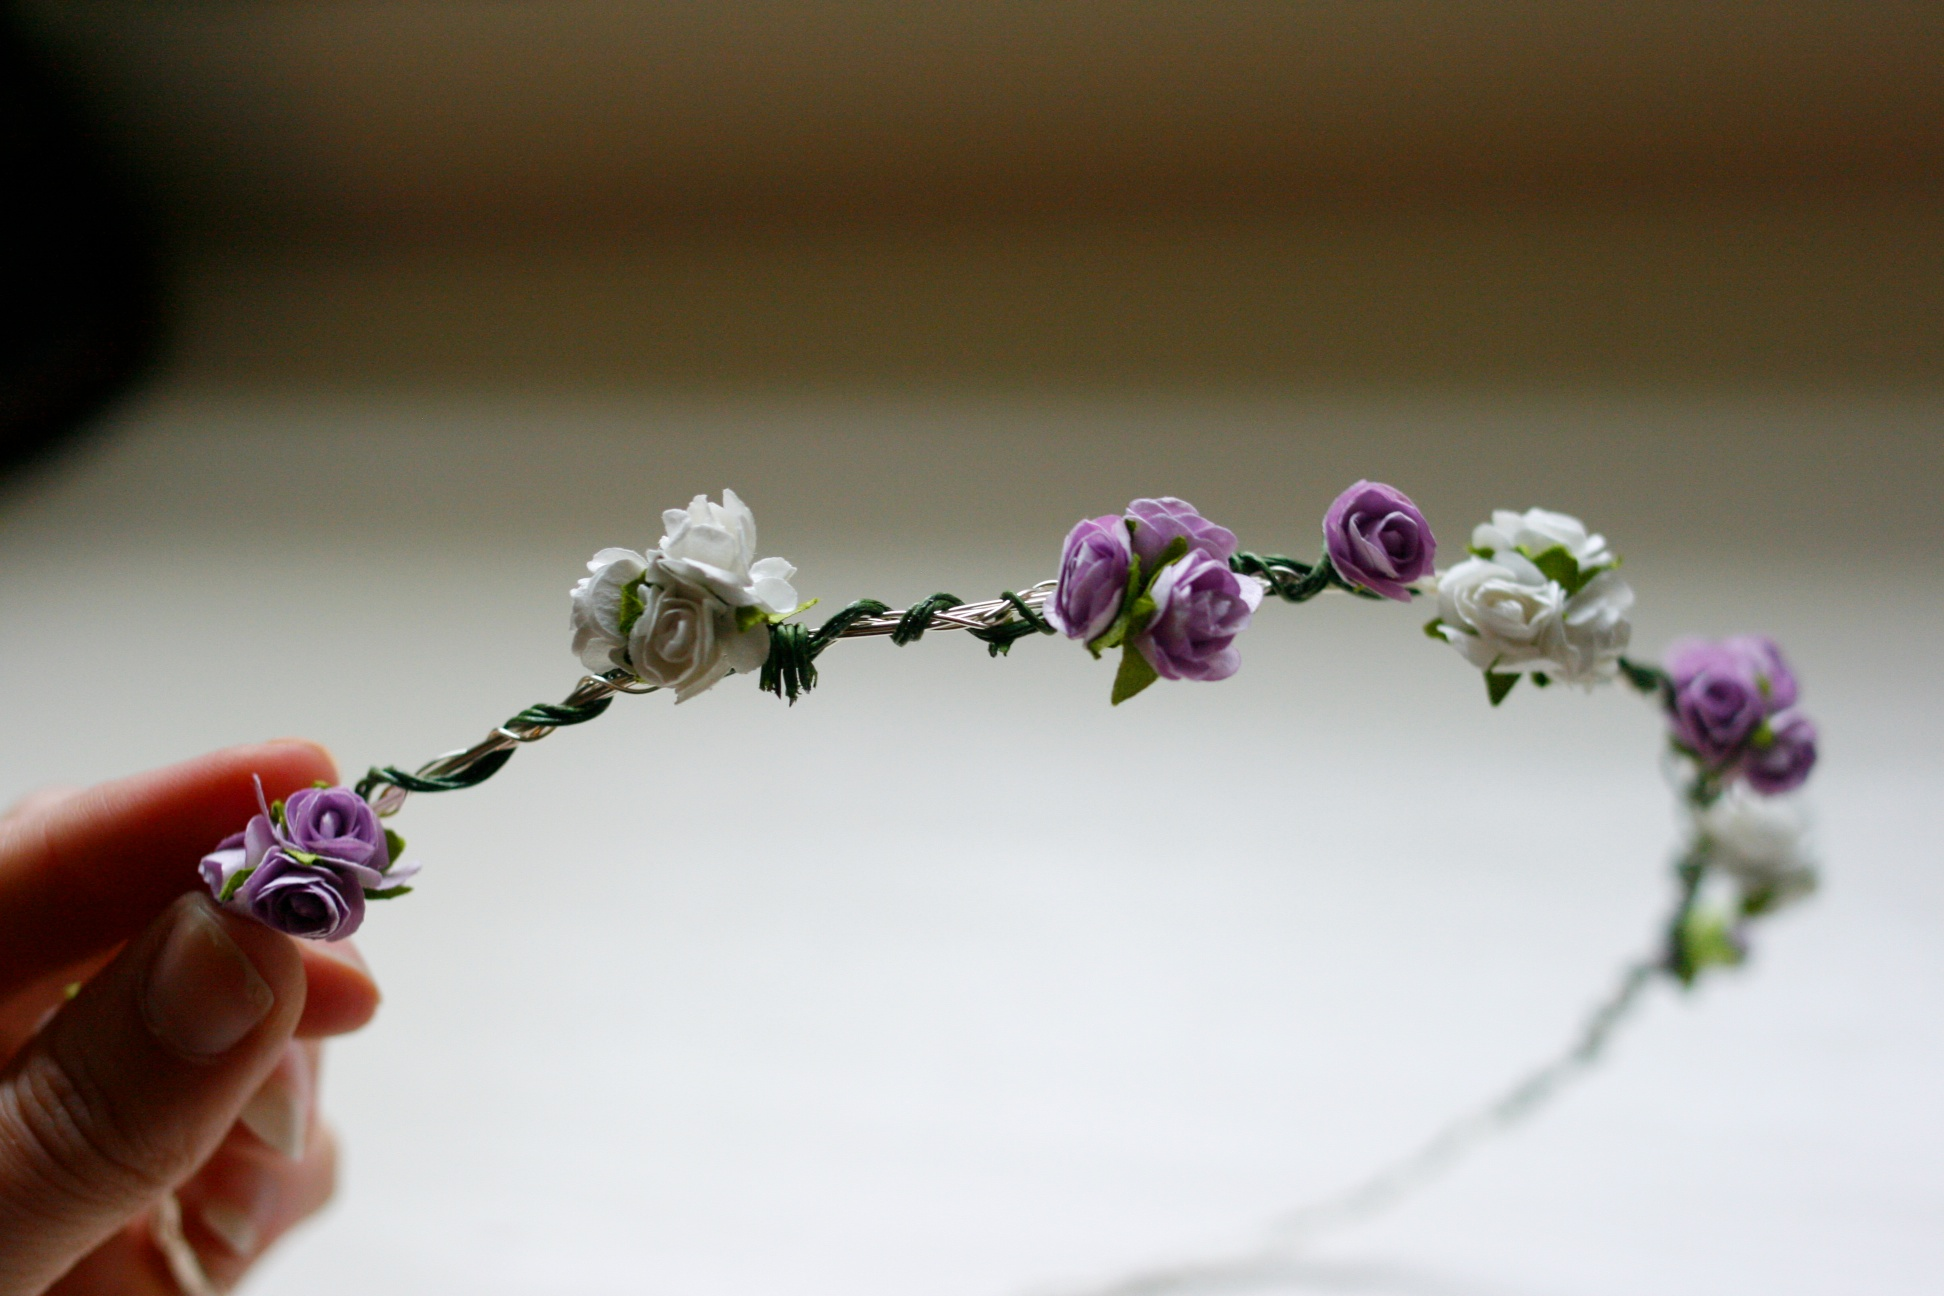 Diy how to make a flower garland crown daisychains dreamers flower festival headband izmirmasajfo Images